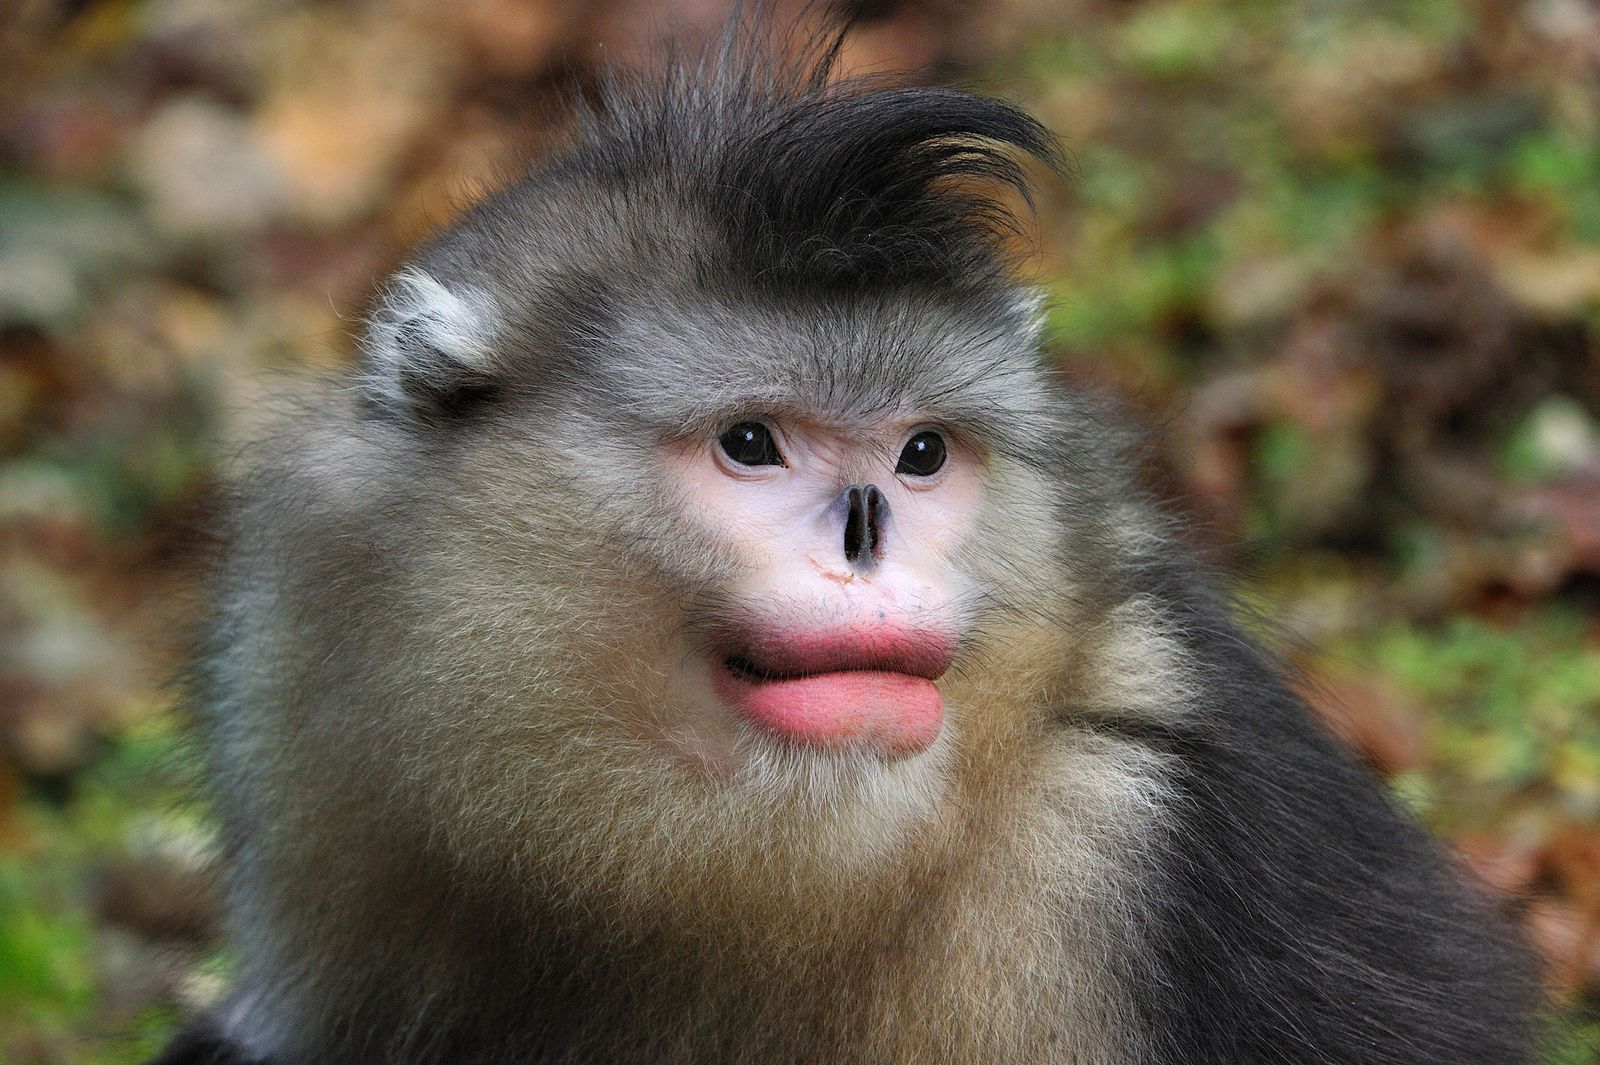 Monkeys Like Full Red Lips Too Smart News Smithsonian Magazine Download monkey images and photos. monkeys like full red lips too smart